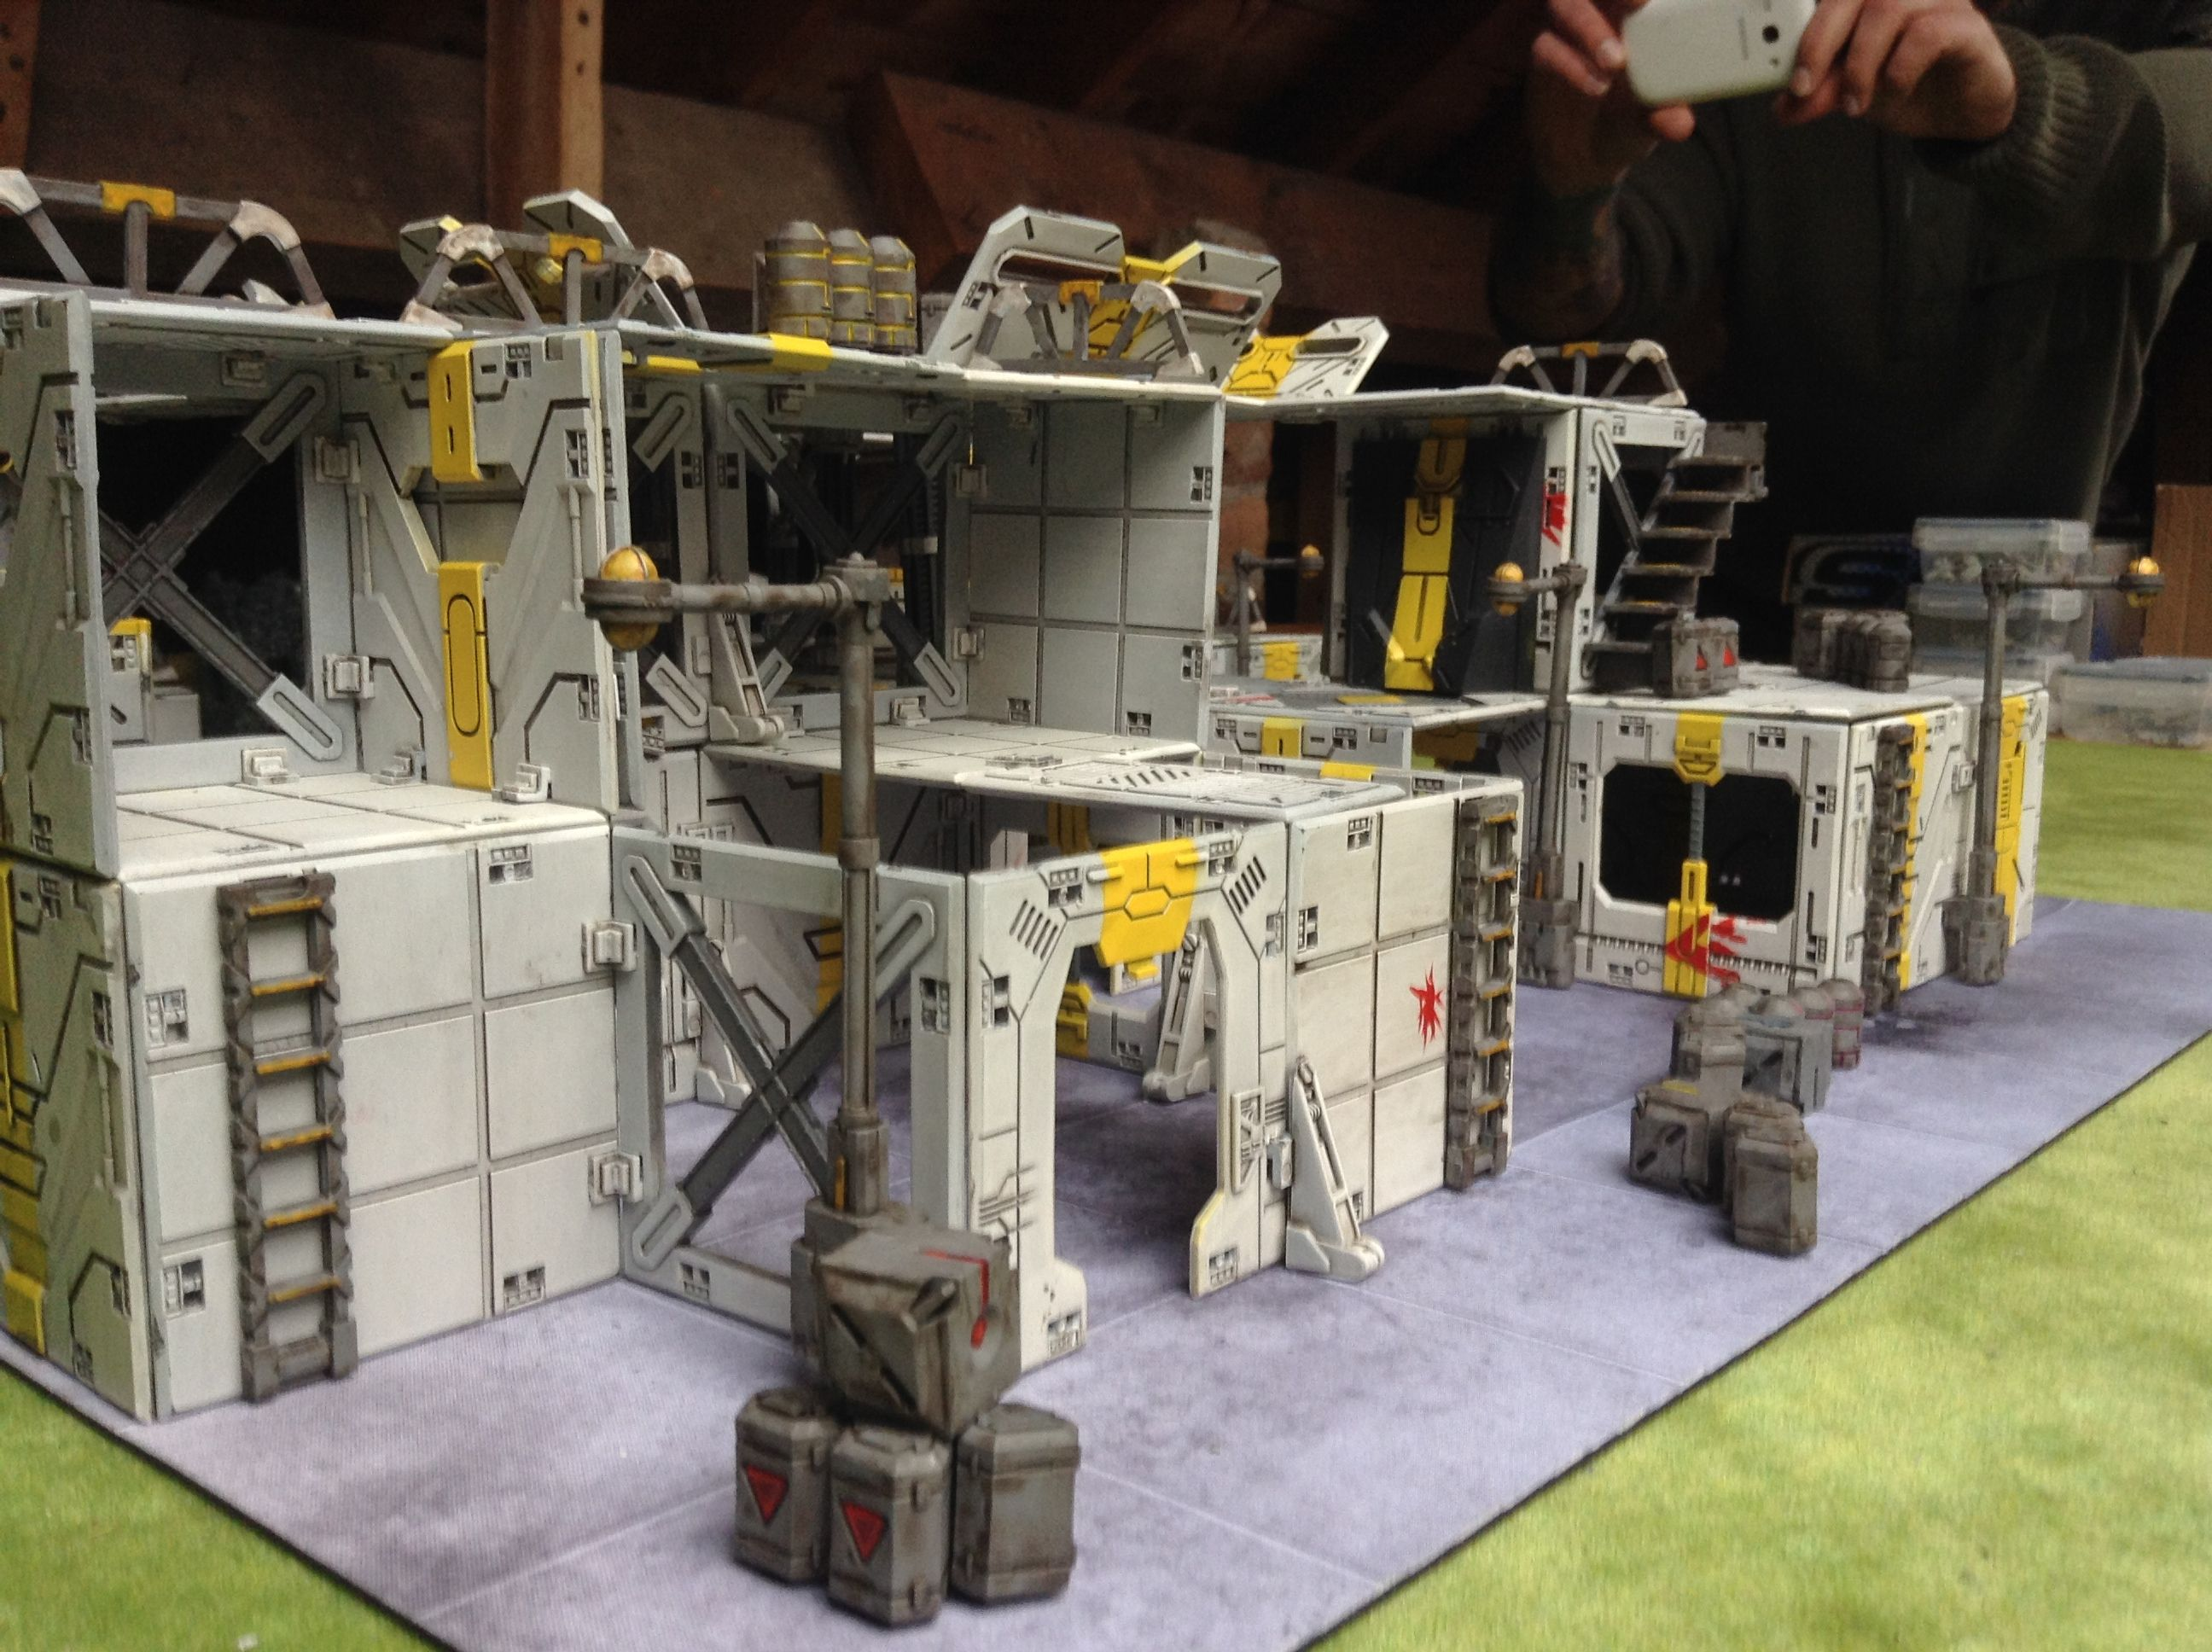 Pin by Sean P on Battlezone Terrain | Scenery, Custom action figures